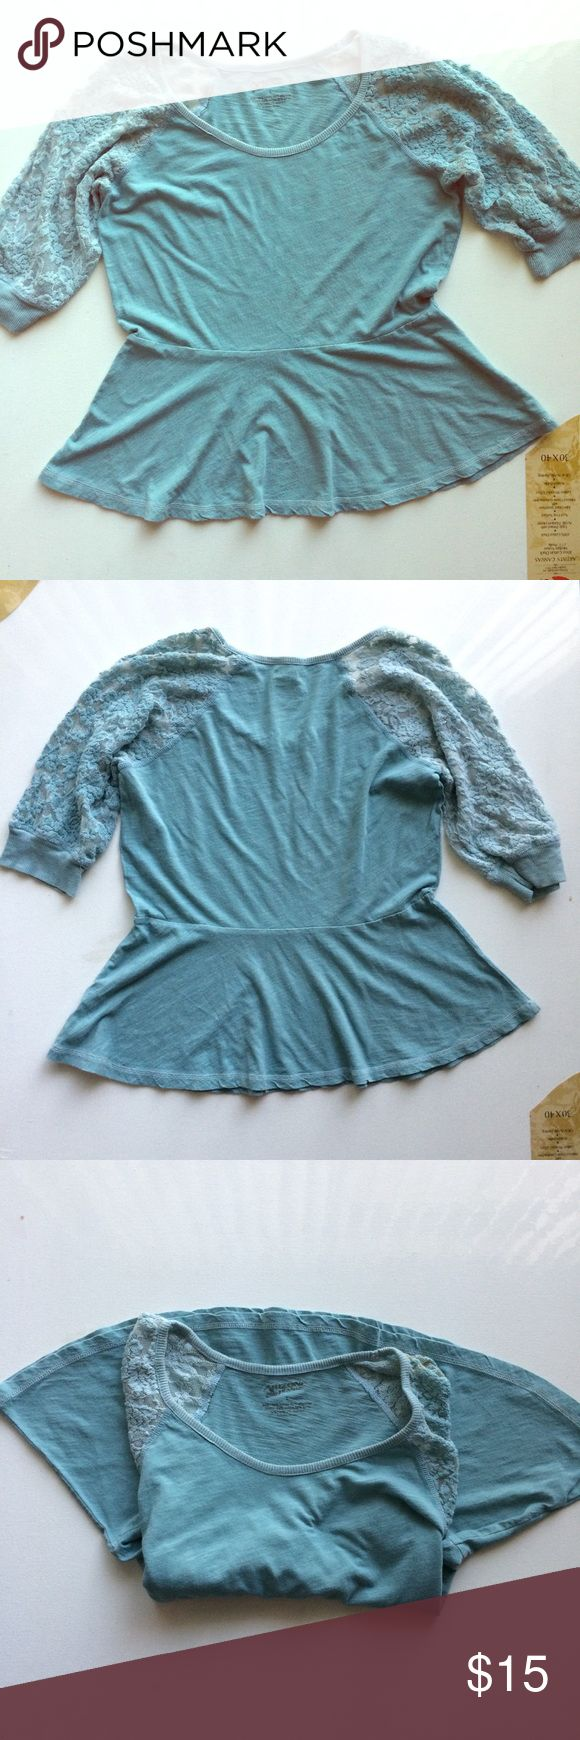 Arizona Jeans Top Size Large Sky Blue Lace sleeves Arizona Jeans Co. Sky blue pellum top with lace sleeves. Size large. Loved in great condition. Body 60% cotton and 40% polyester. Elbow length Lace sleeves are 54% cotton and 32% rayon. Arizona Jean Company Tops Tees - Short Sleeve